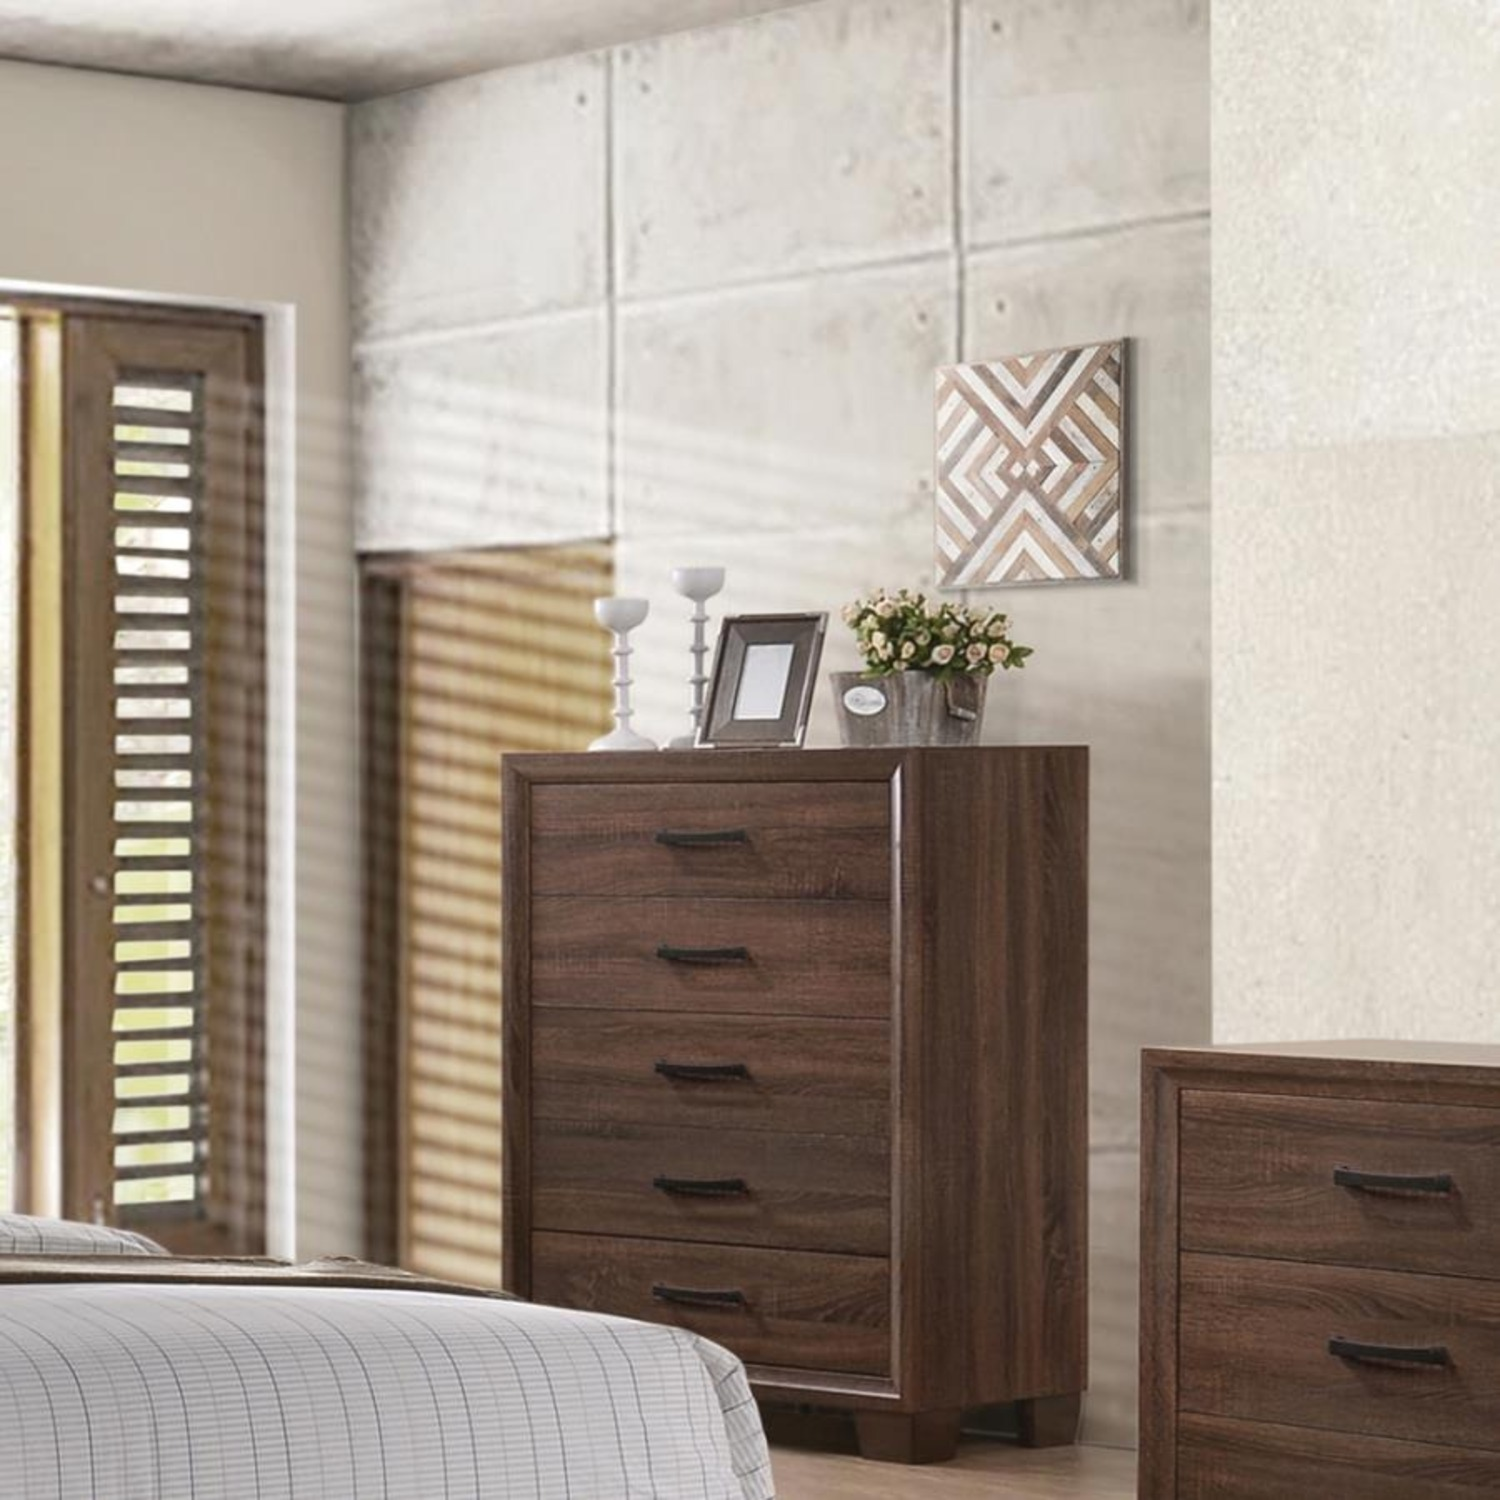 Modern Chest In Warm Brown Finish - image-4